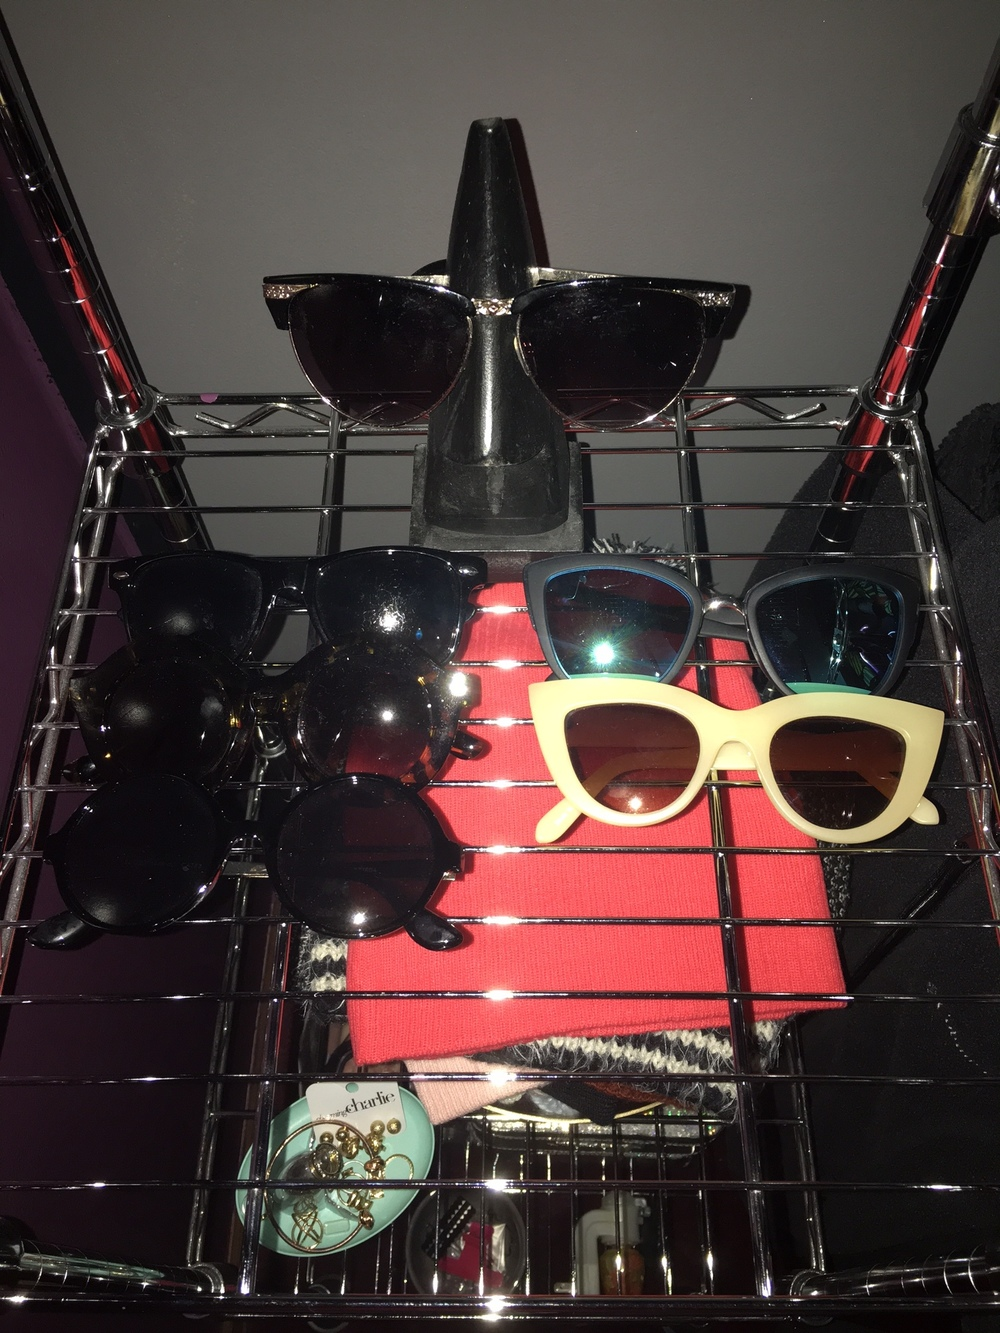 Since the end of last year to now, I have been completely obsessing over sunglasses. I honestly would have more on my shelf but I tried my best to hold myself back since I'm saving to move out of state here soon. (Even though tons of sunglasses would come handy in that hot,gorgeous, humid state!)